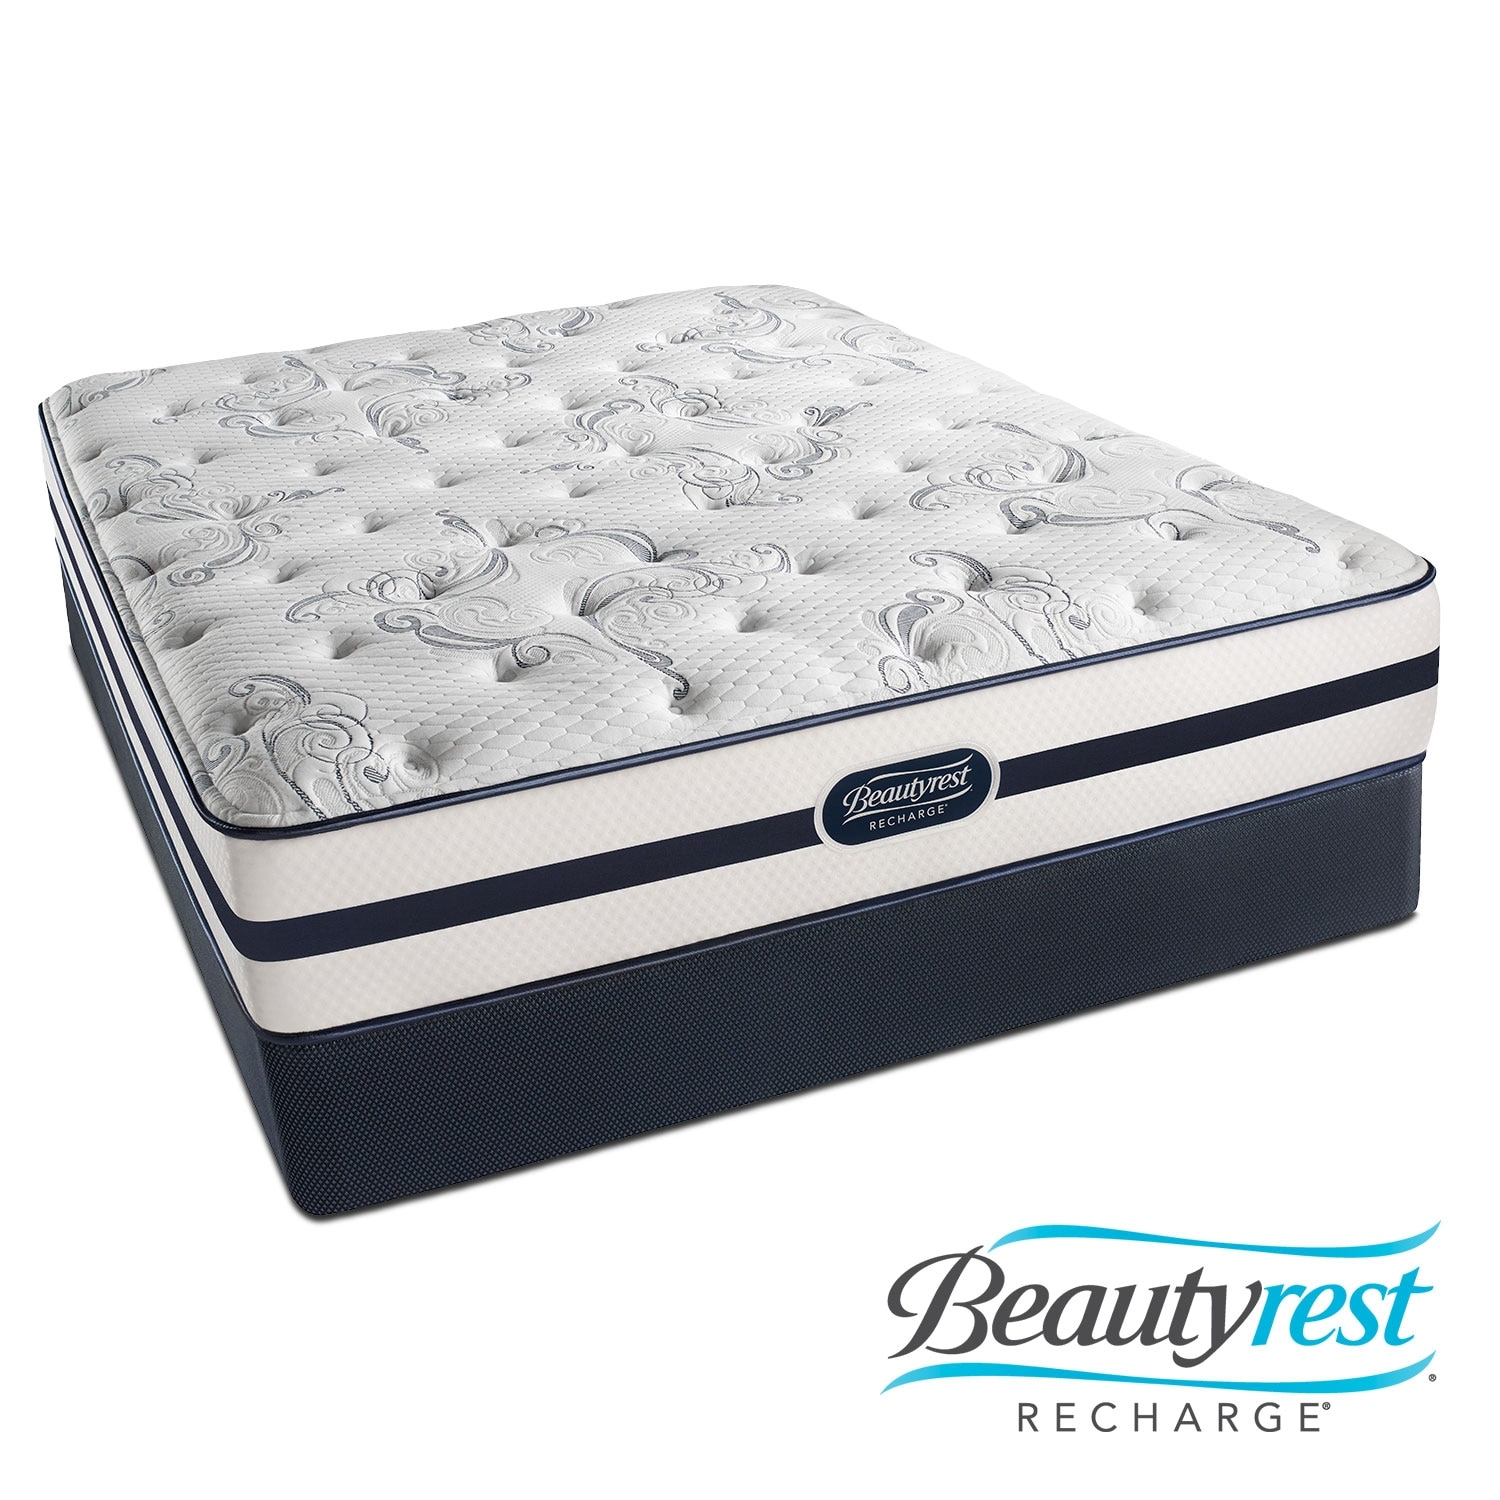 Deals For Comfort Magic Plush 11 Inch Memory Foam Mattress - King